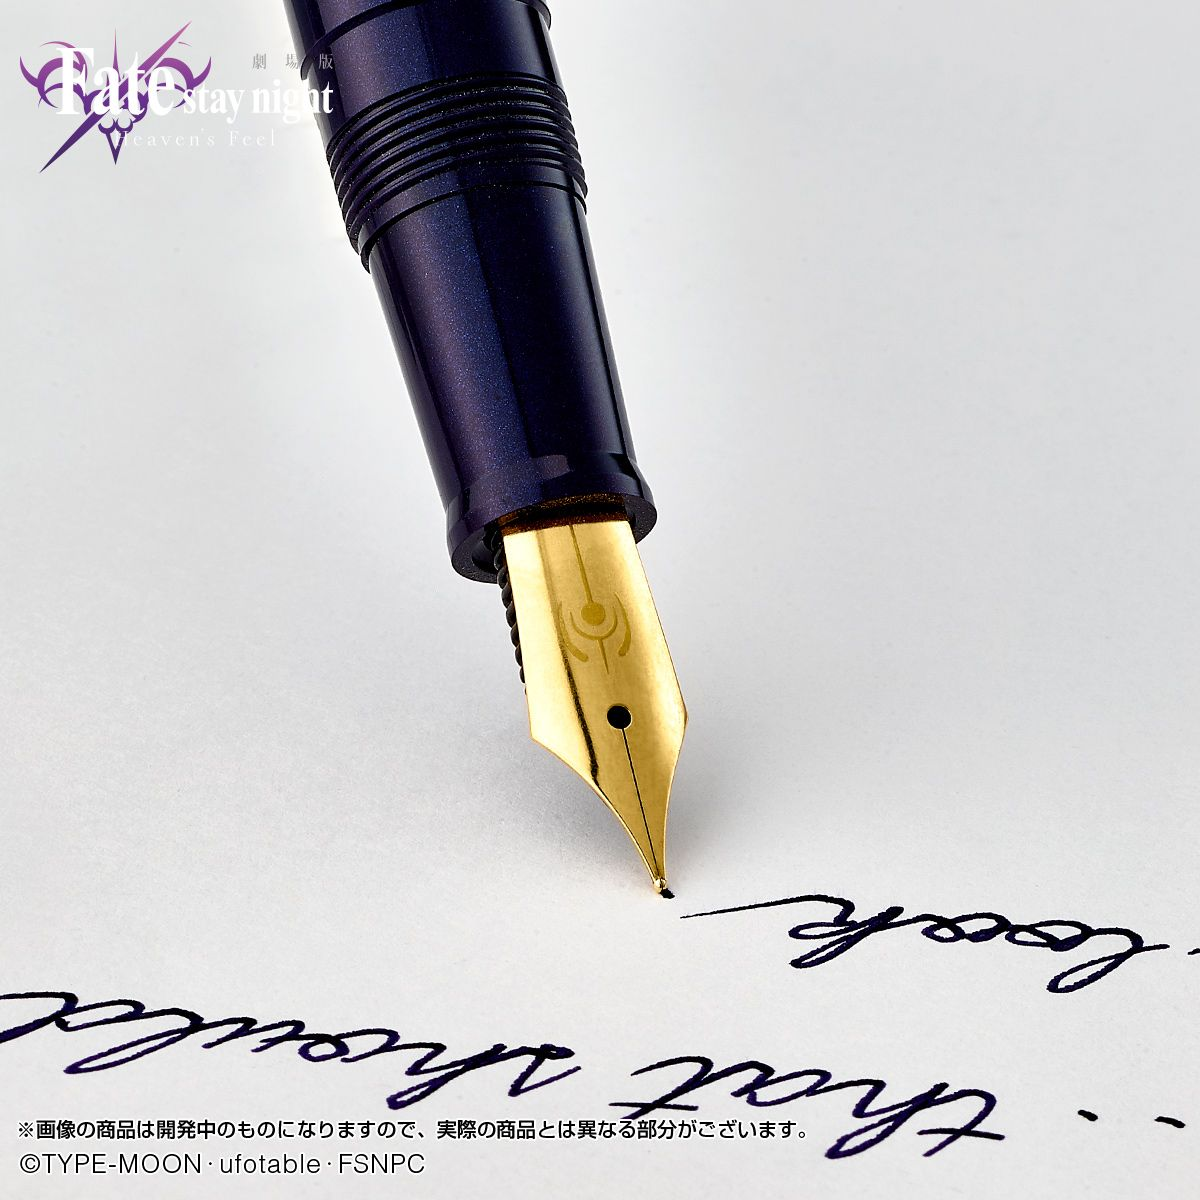 (C)TYPE-MOON・ufotable・FSNPCFate/stay night Fountain Pen | MANGA.TOKYO Anime Merchandise Monday (January 2019)